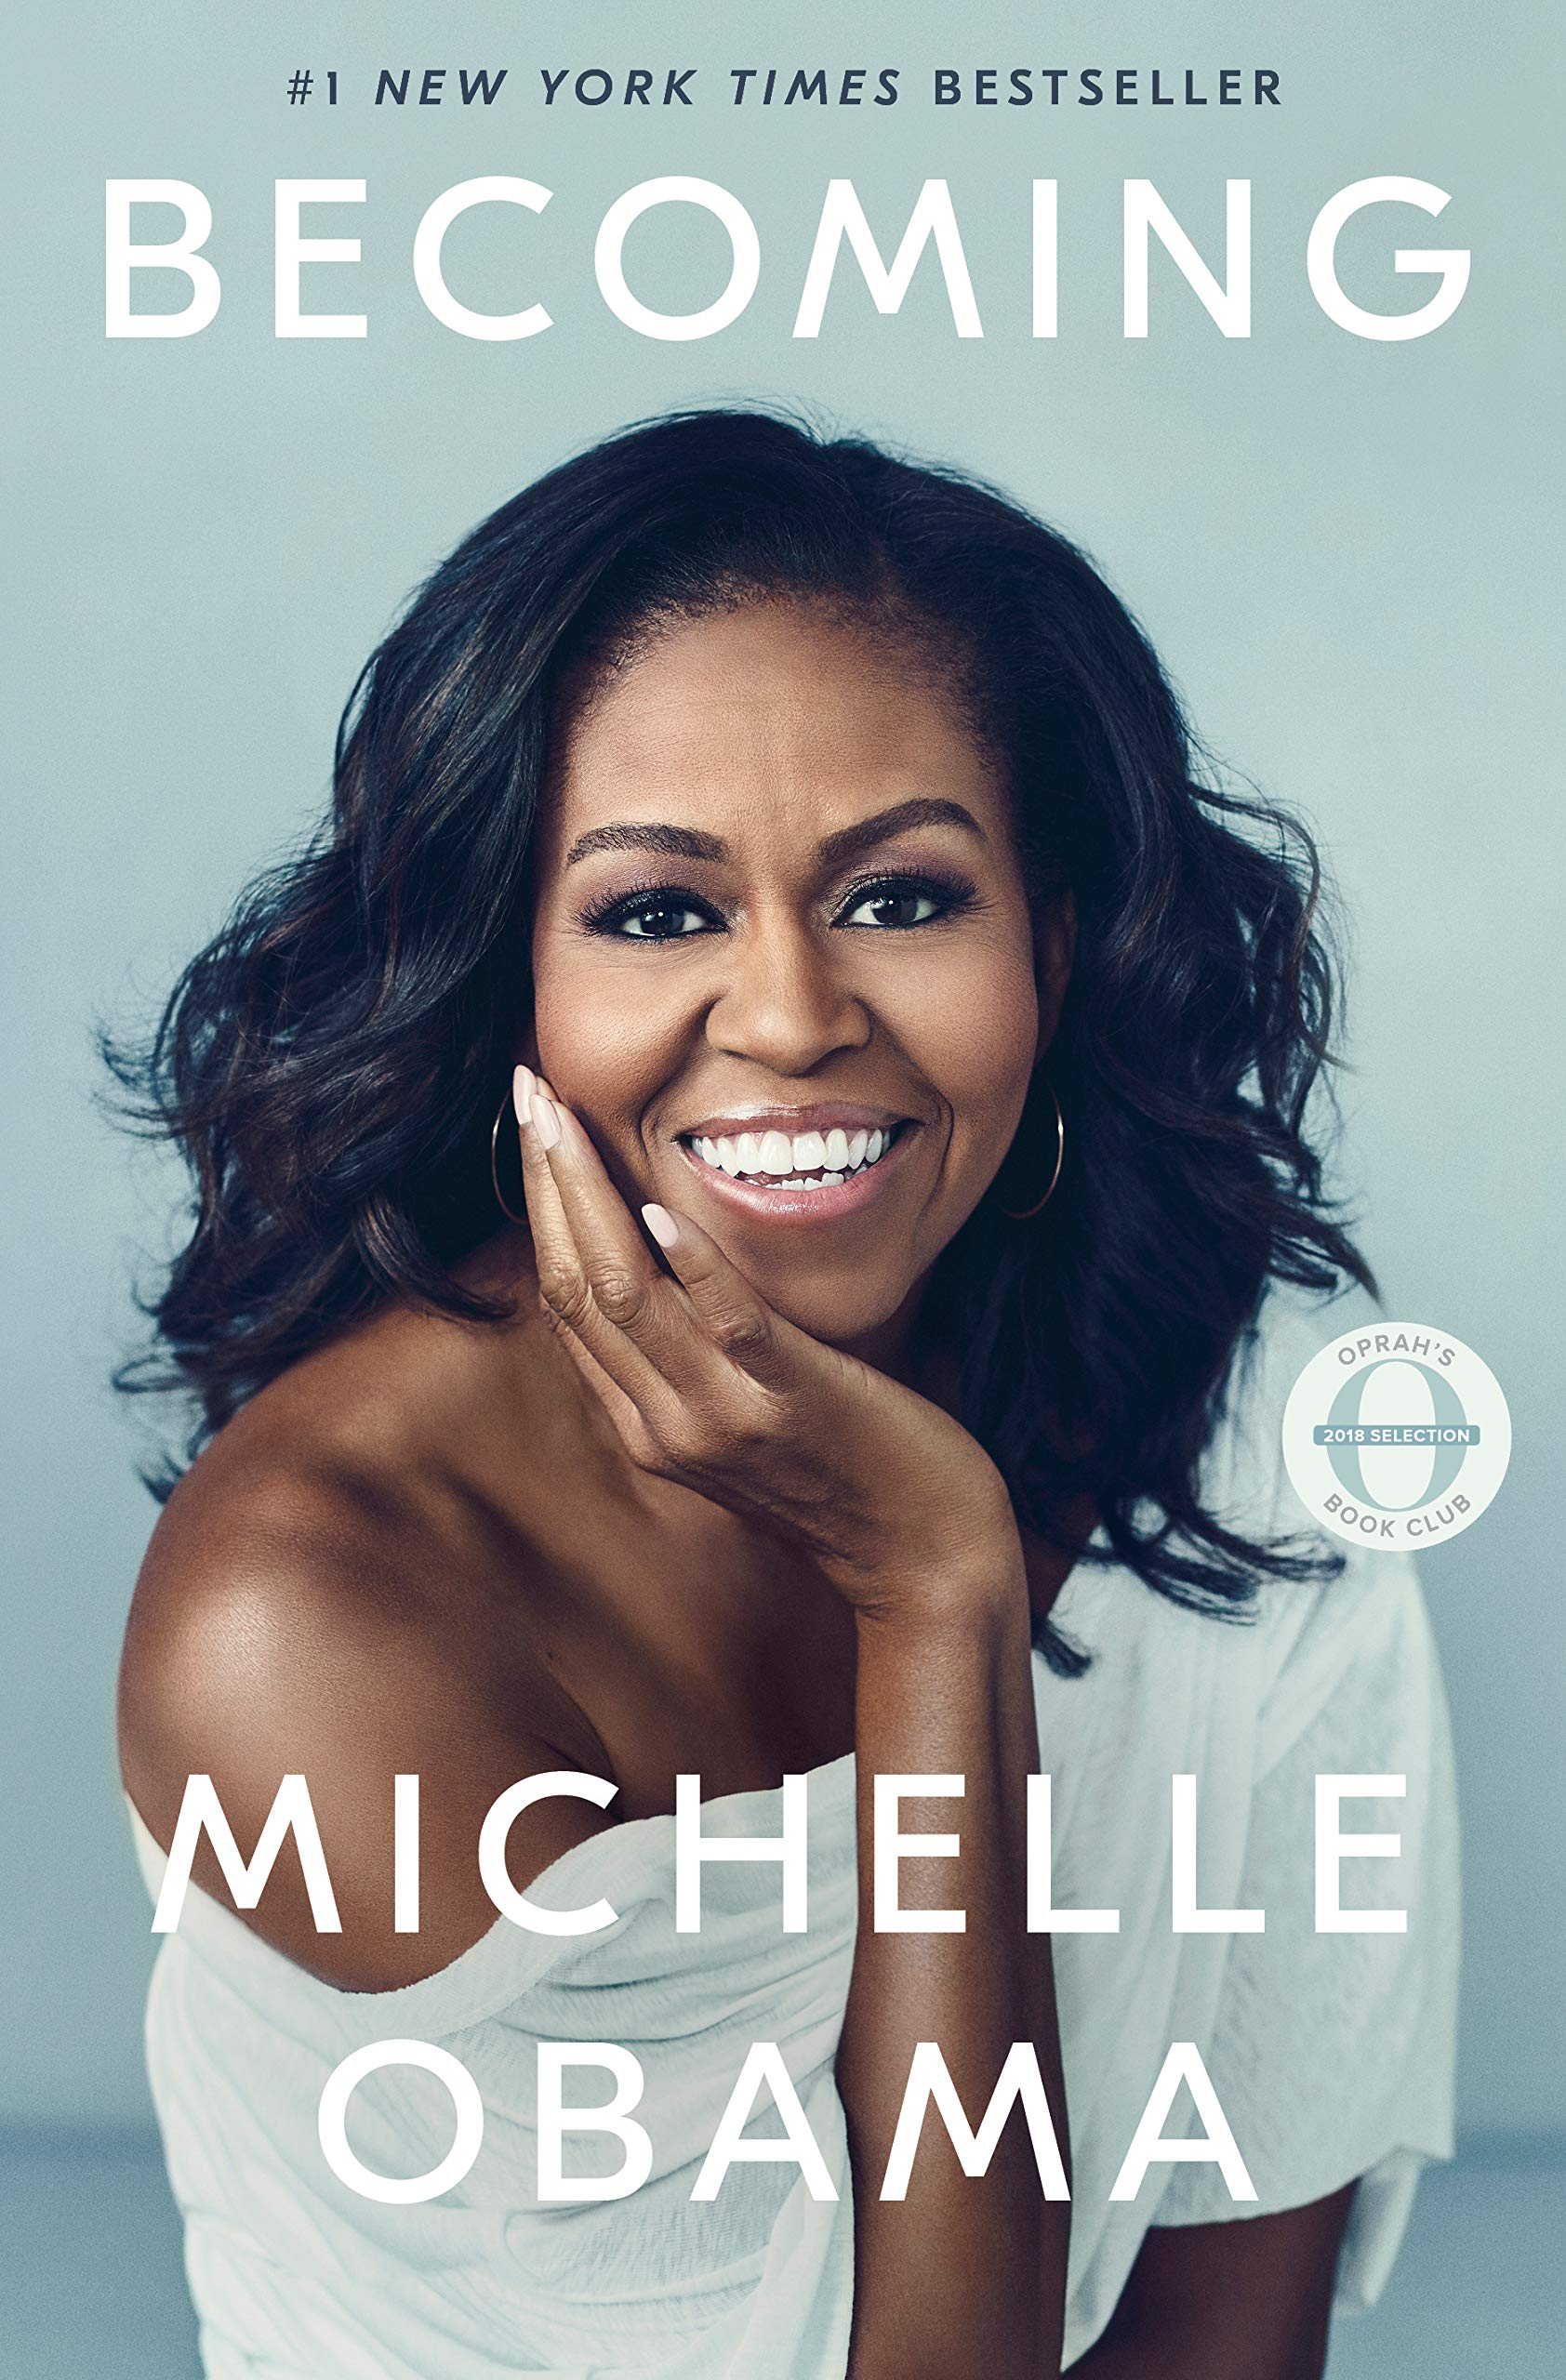 the front cover of michelle obama's bestselling book becoming